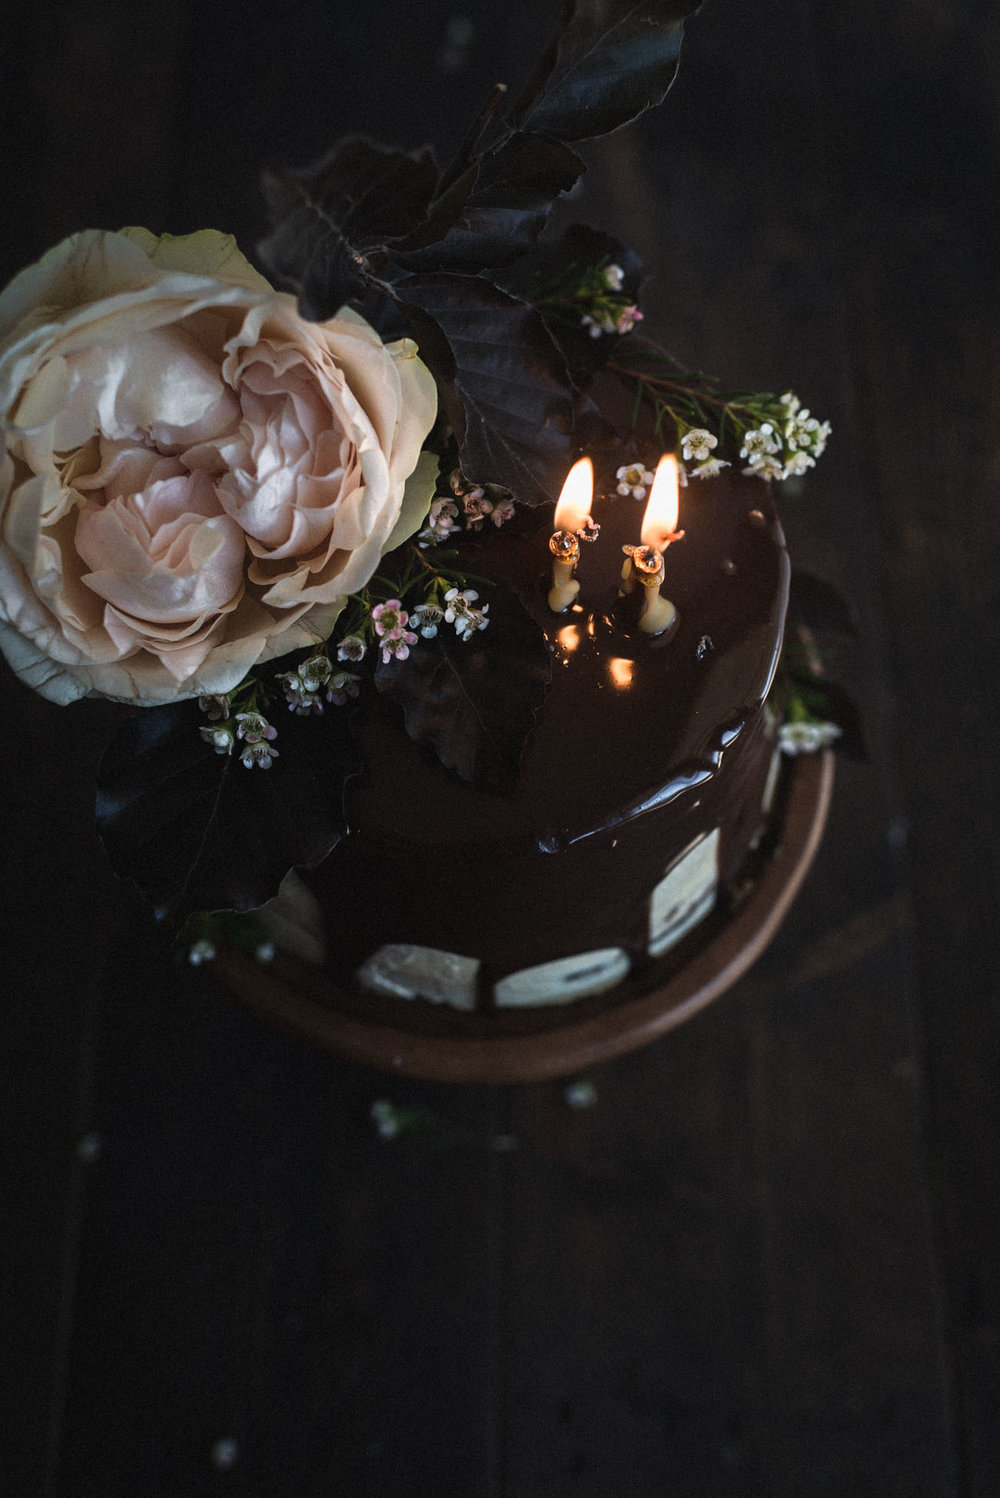 Gingerbread-Whisky-Cake-with-Brown-Sugar-Swiss-Meringue-Buttercream-and-Milk-Chocolate-Ganache-5.jpg